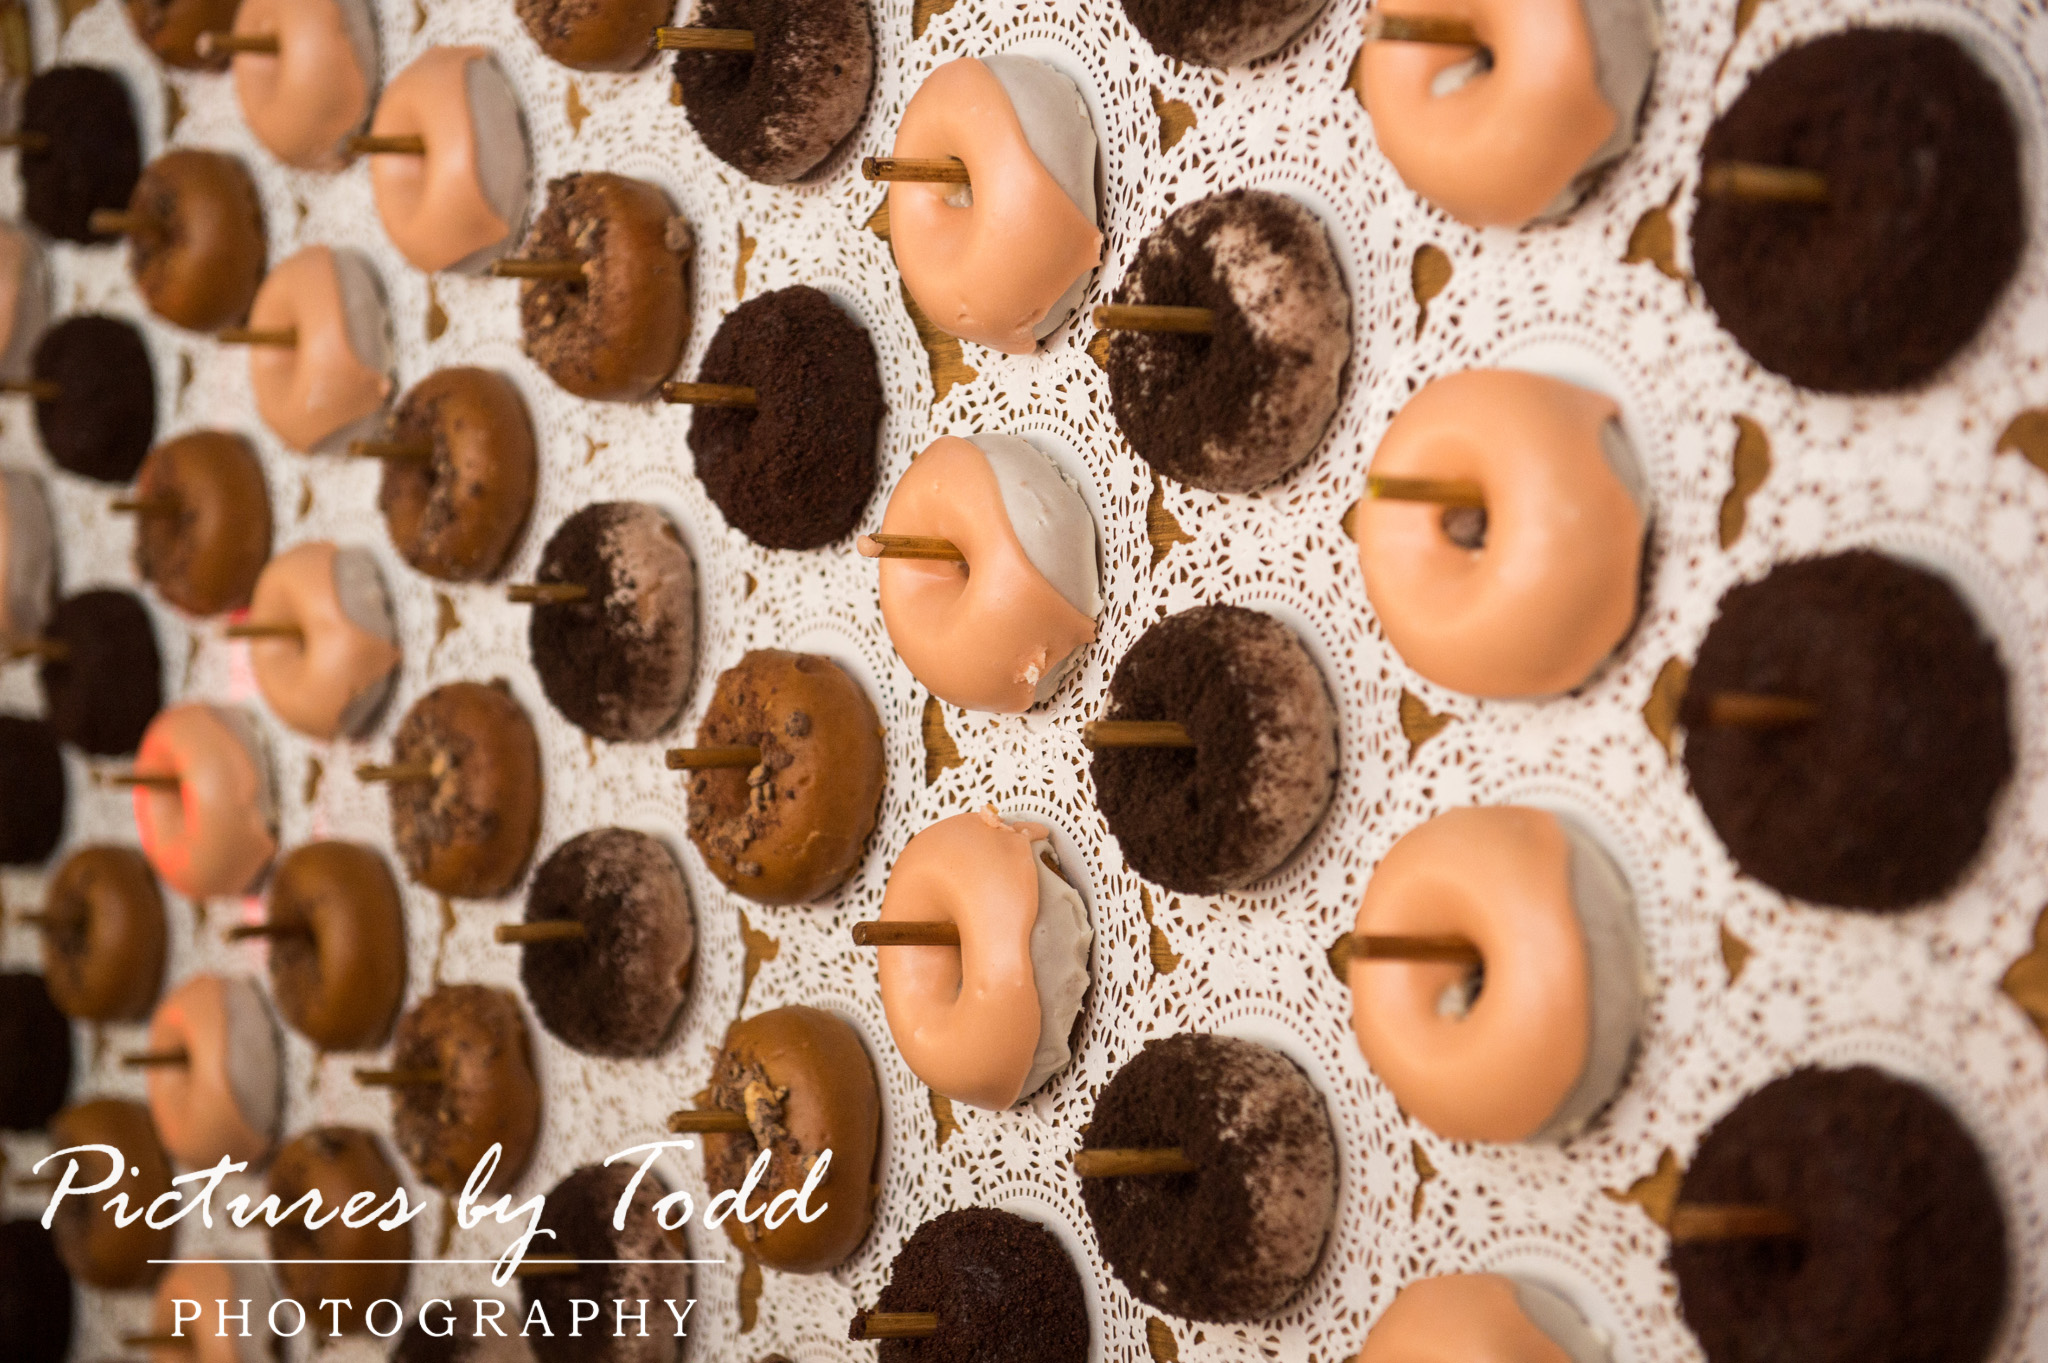 Artesano Gallery Bat Mitzvah Artesano Gallery Philadelphia Event Fx Productions mAll Around entertainment donut wall federal donuts